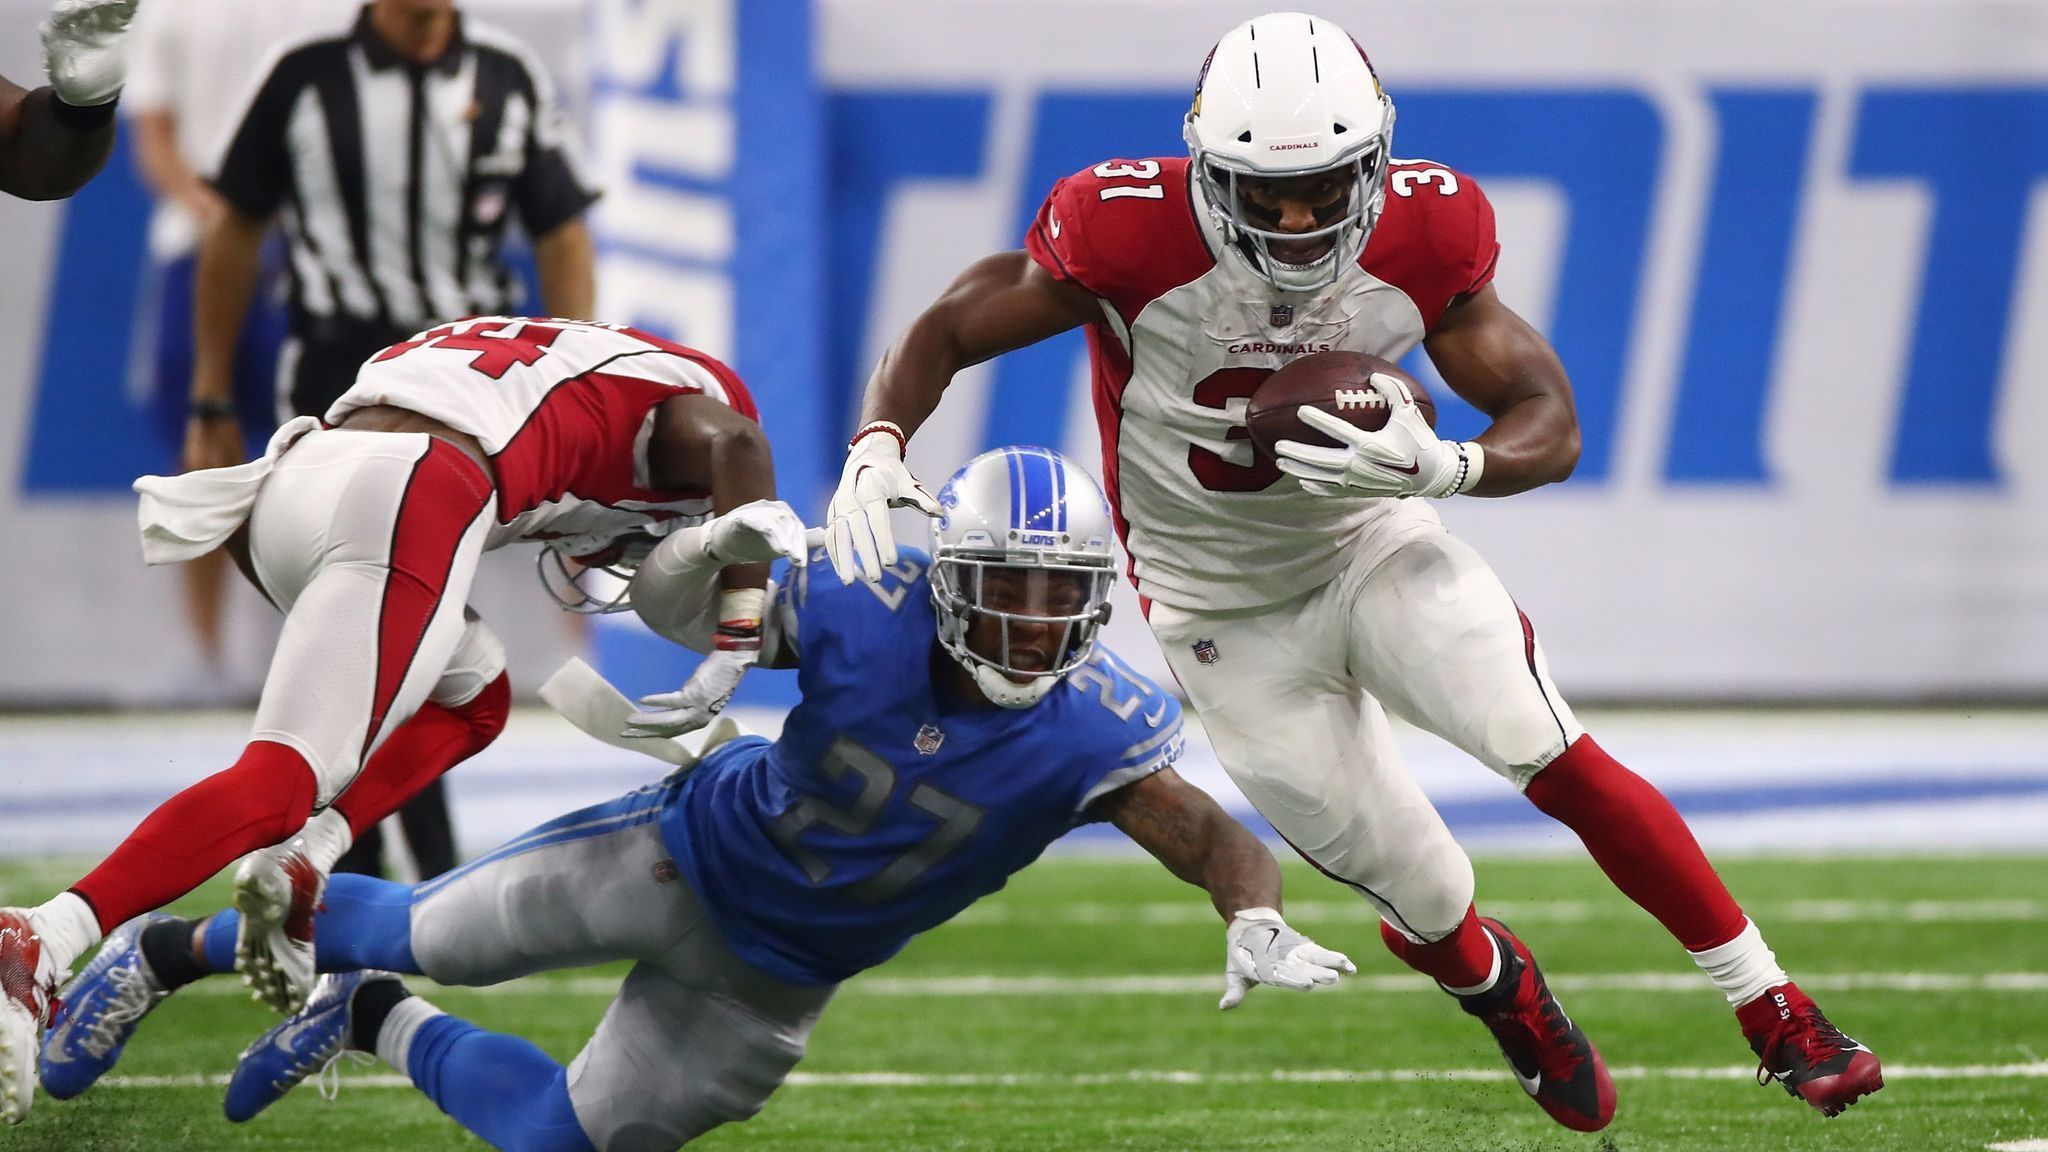 Could be up to Bruce Arians whether David Johnson plays sooner